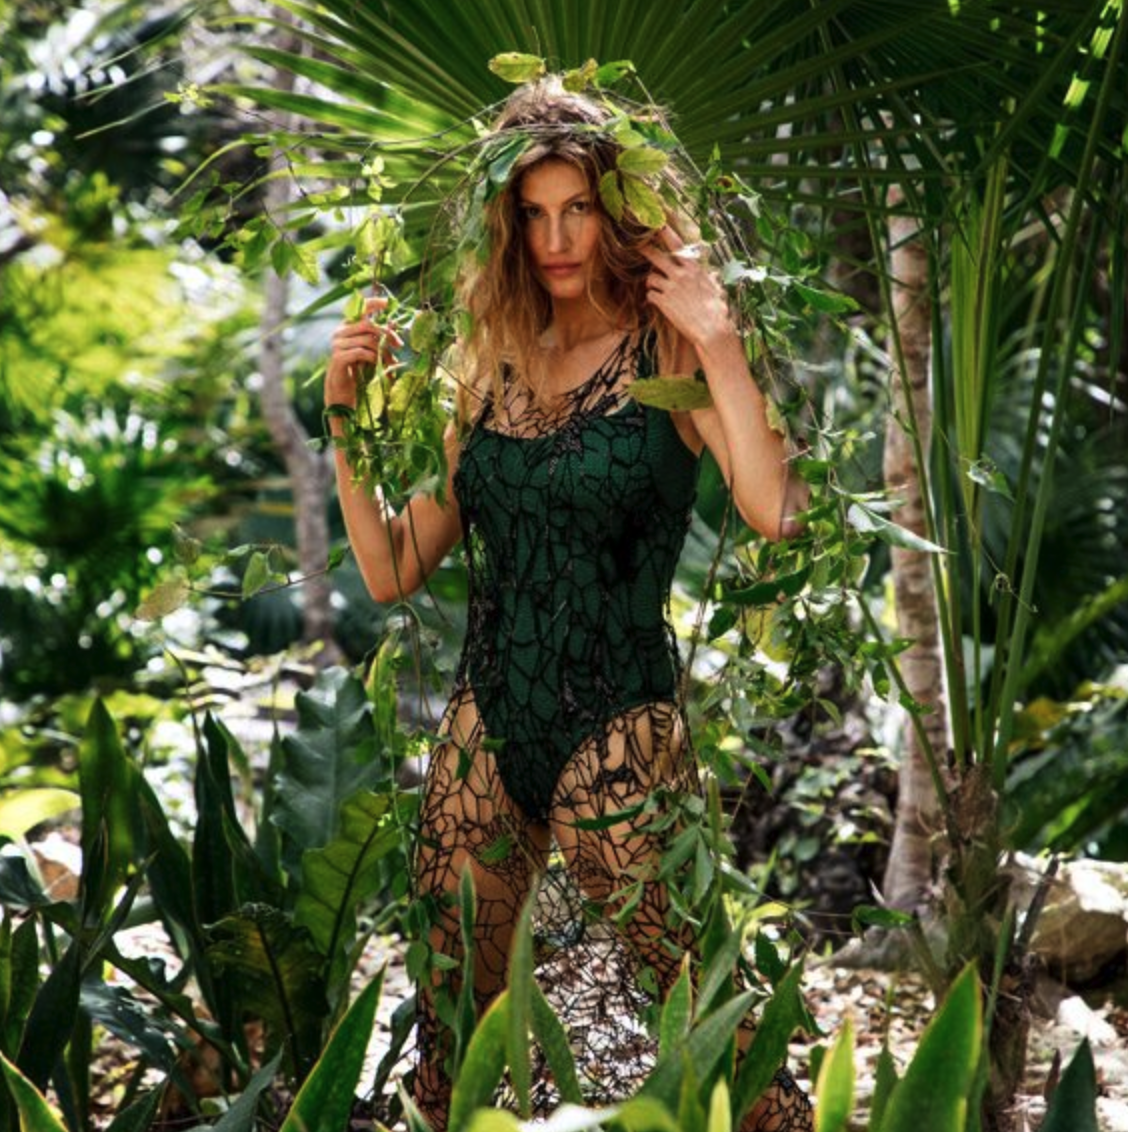 Gisele Bundchen Shows Off Her Flawless Bikini Body for the July Issue of VOGUE